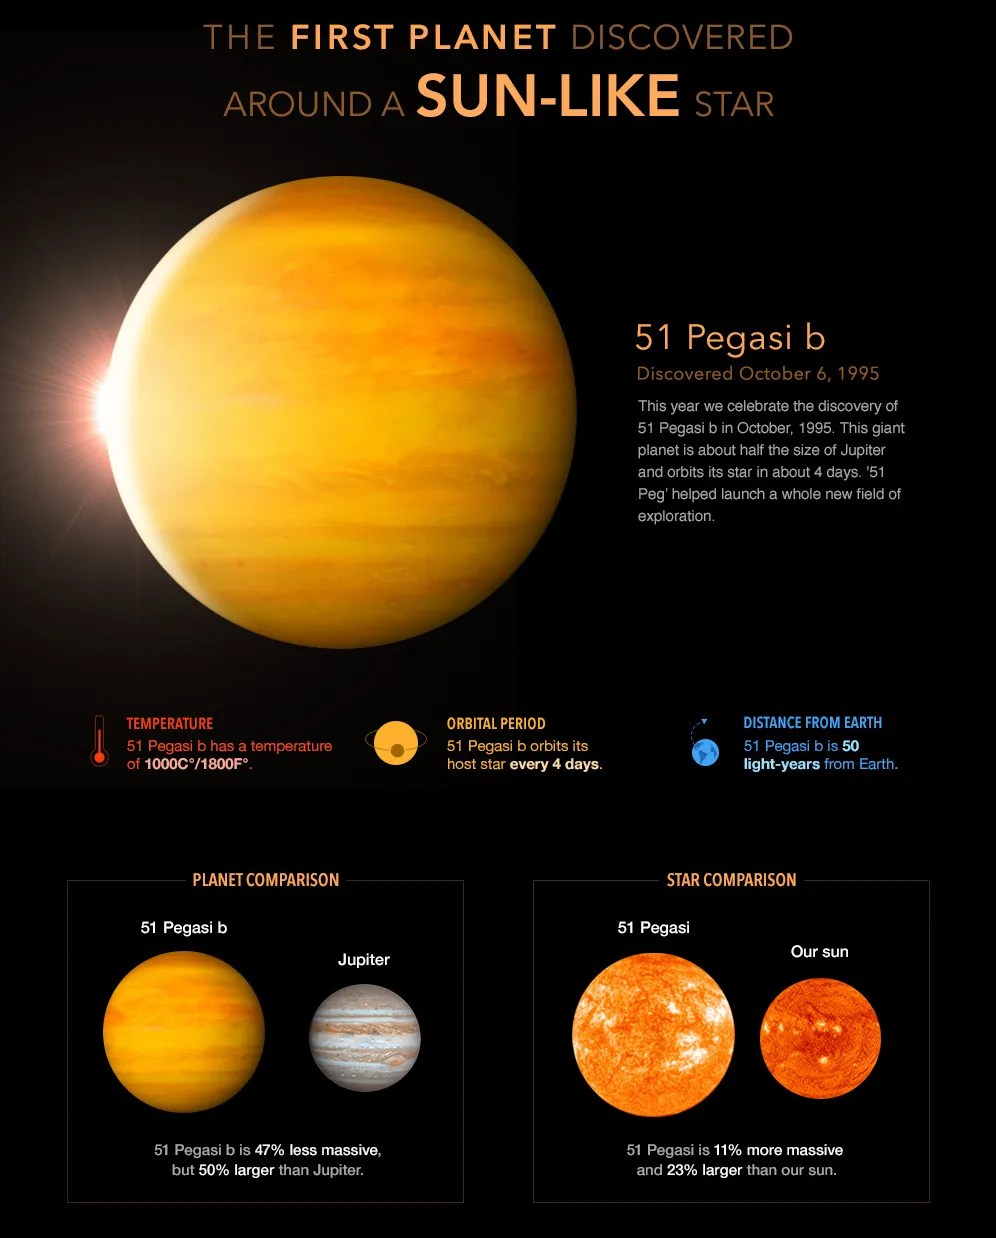 medium resolution of the discovery of the first extrasolar planet orbiting a sun like star in october 1995 called 51 pegasi b clearly demonstrated for the first time that